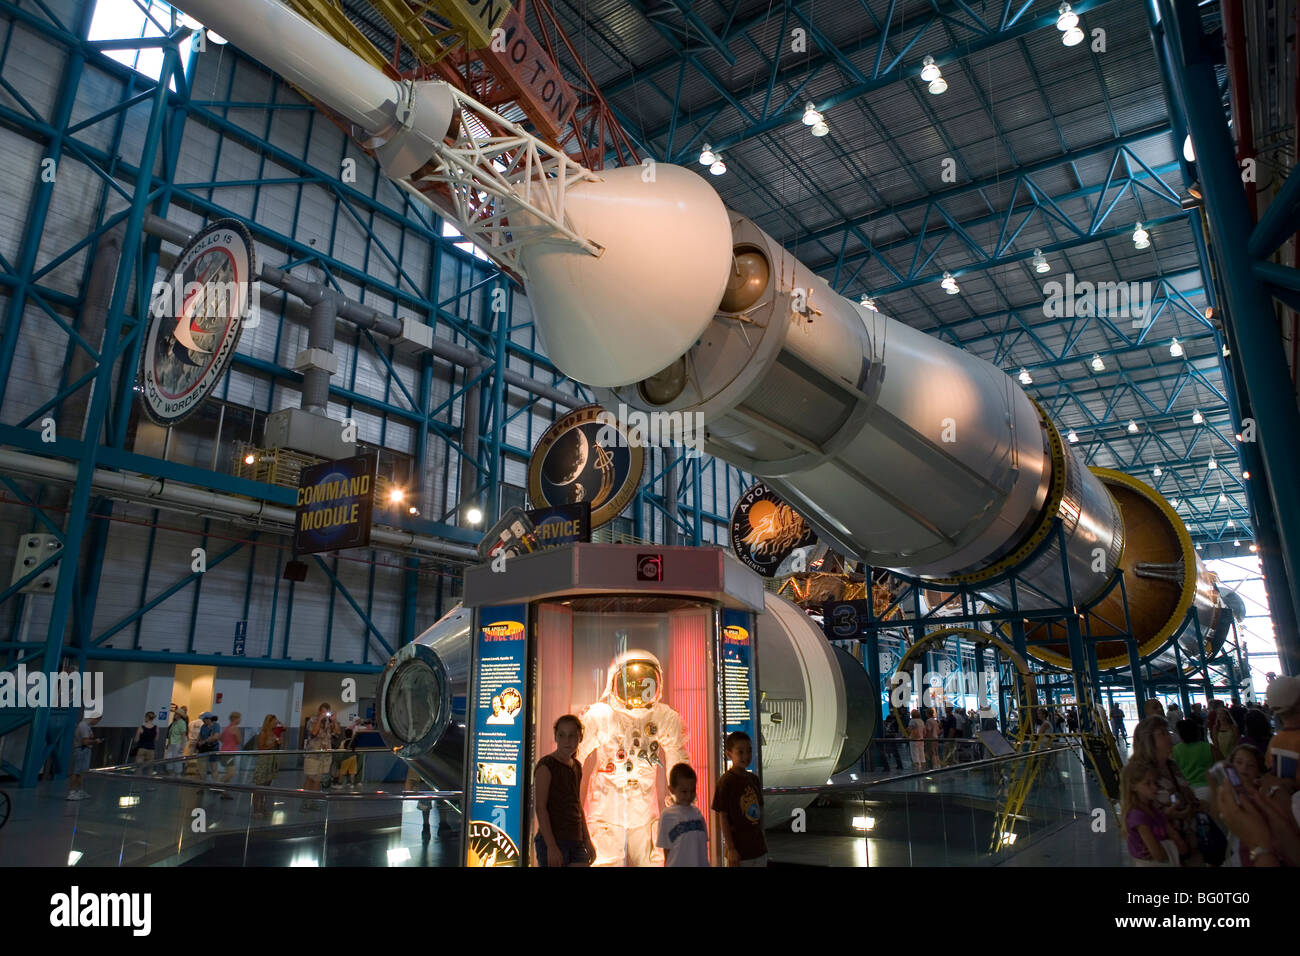 Saturn V rocket, Command and Service modules, and space suit from Apollo 13, Kennedy Space Center, Cape Canaveral, - Stock Image